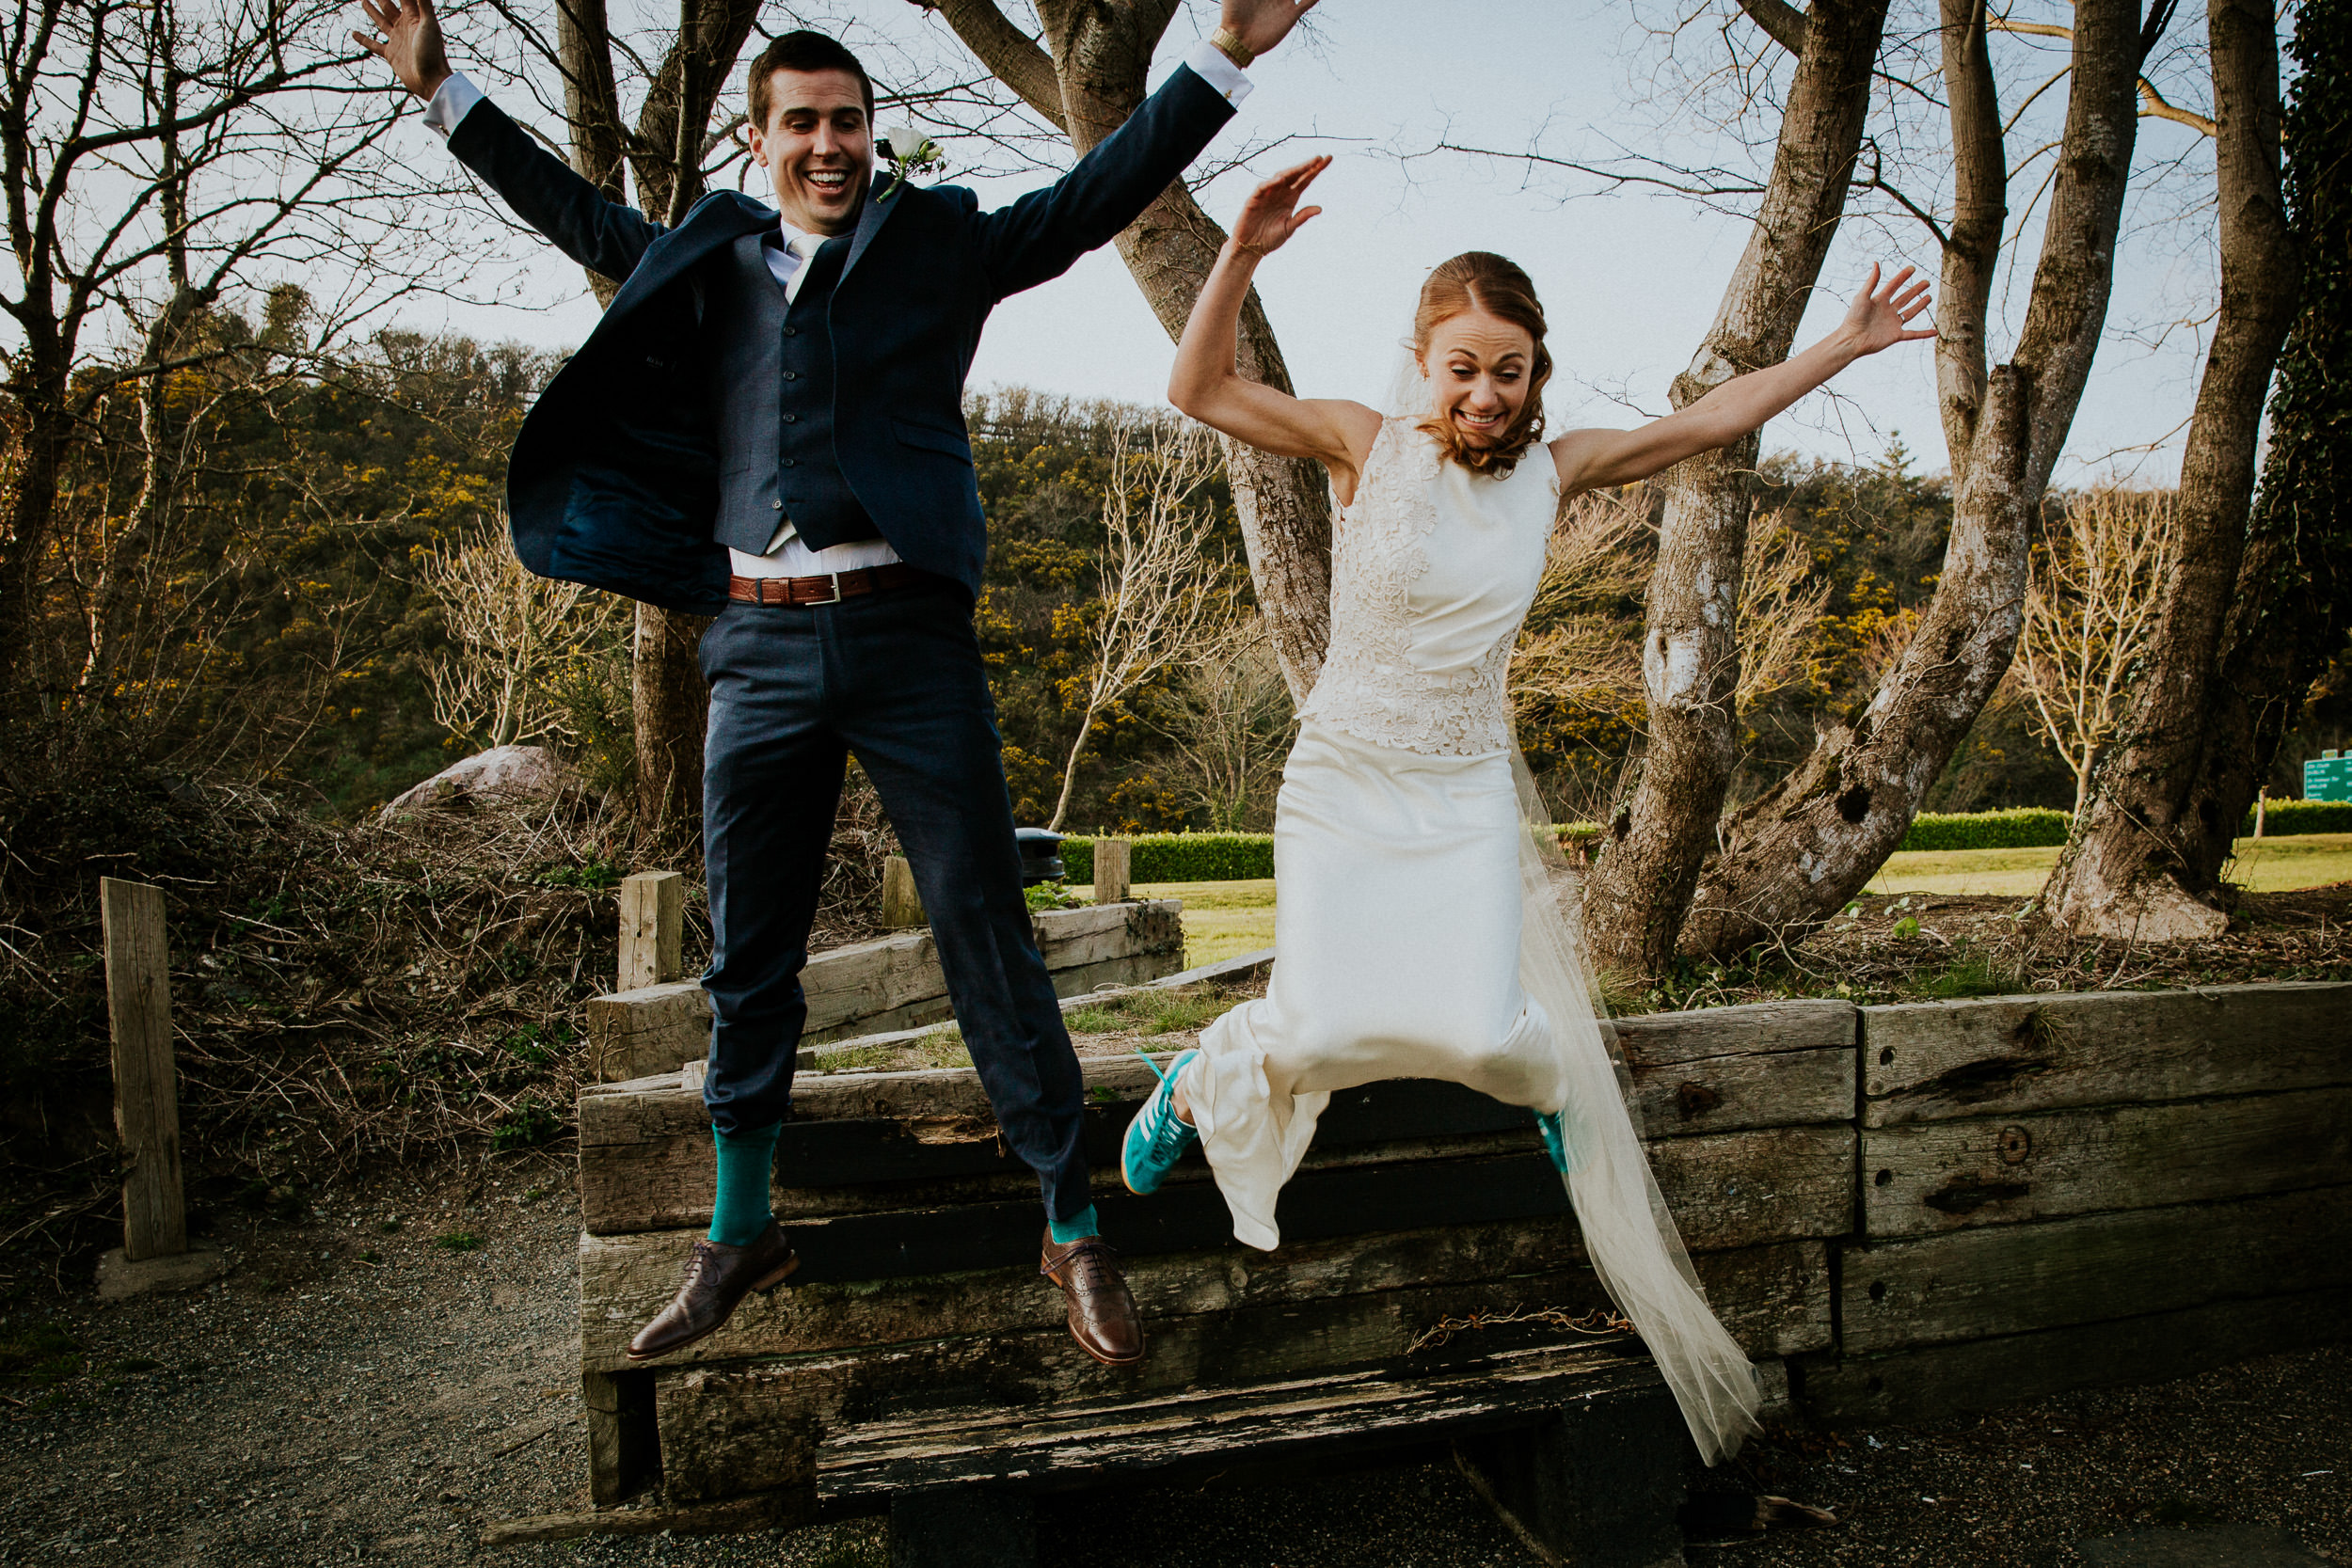 clairebyrnephotography-fun-wedding-photographer-ireland-creative-111.jpg